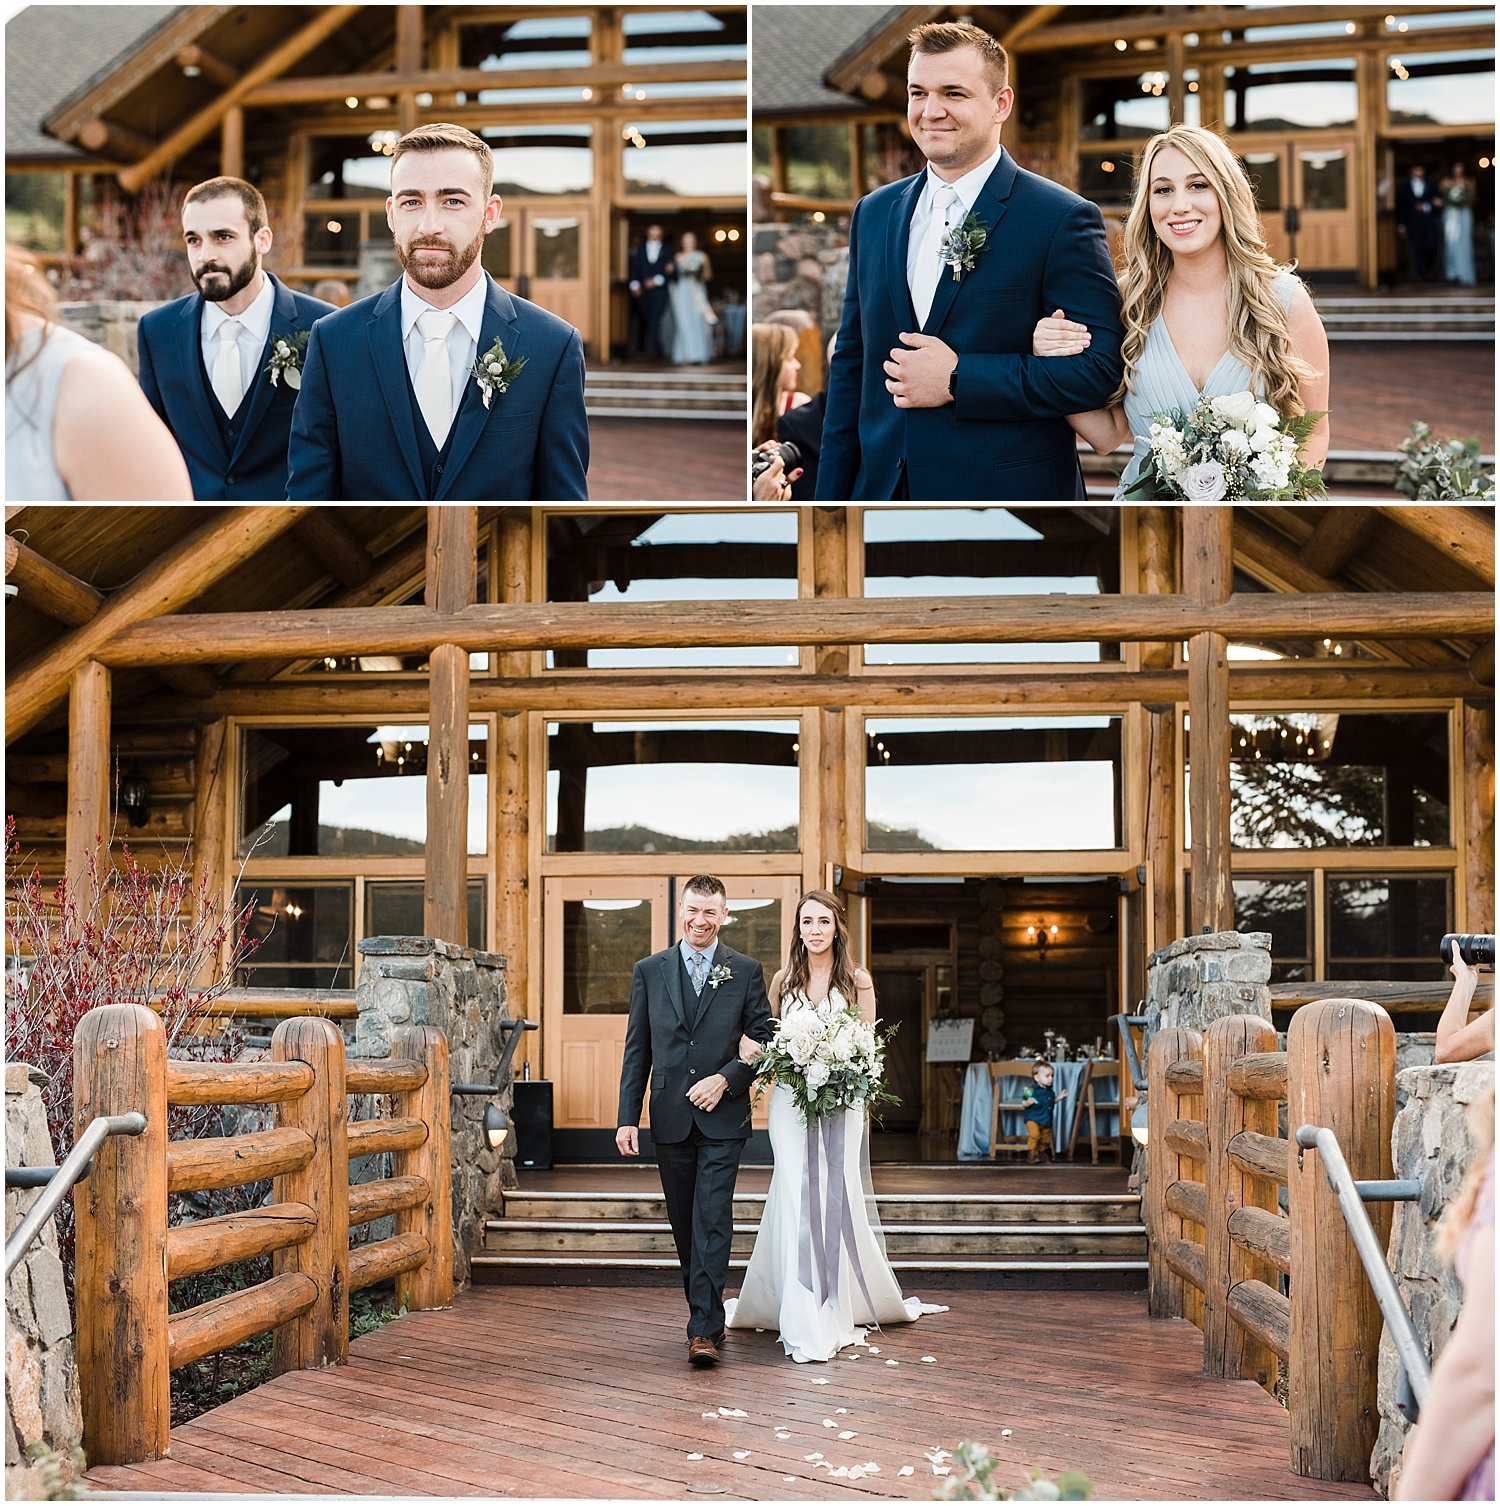 Evergreen_Lake_House_Wedding_Colorado_Apollo_Fields_141.jpg